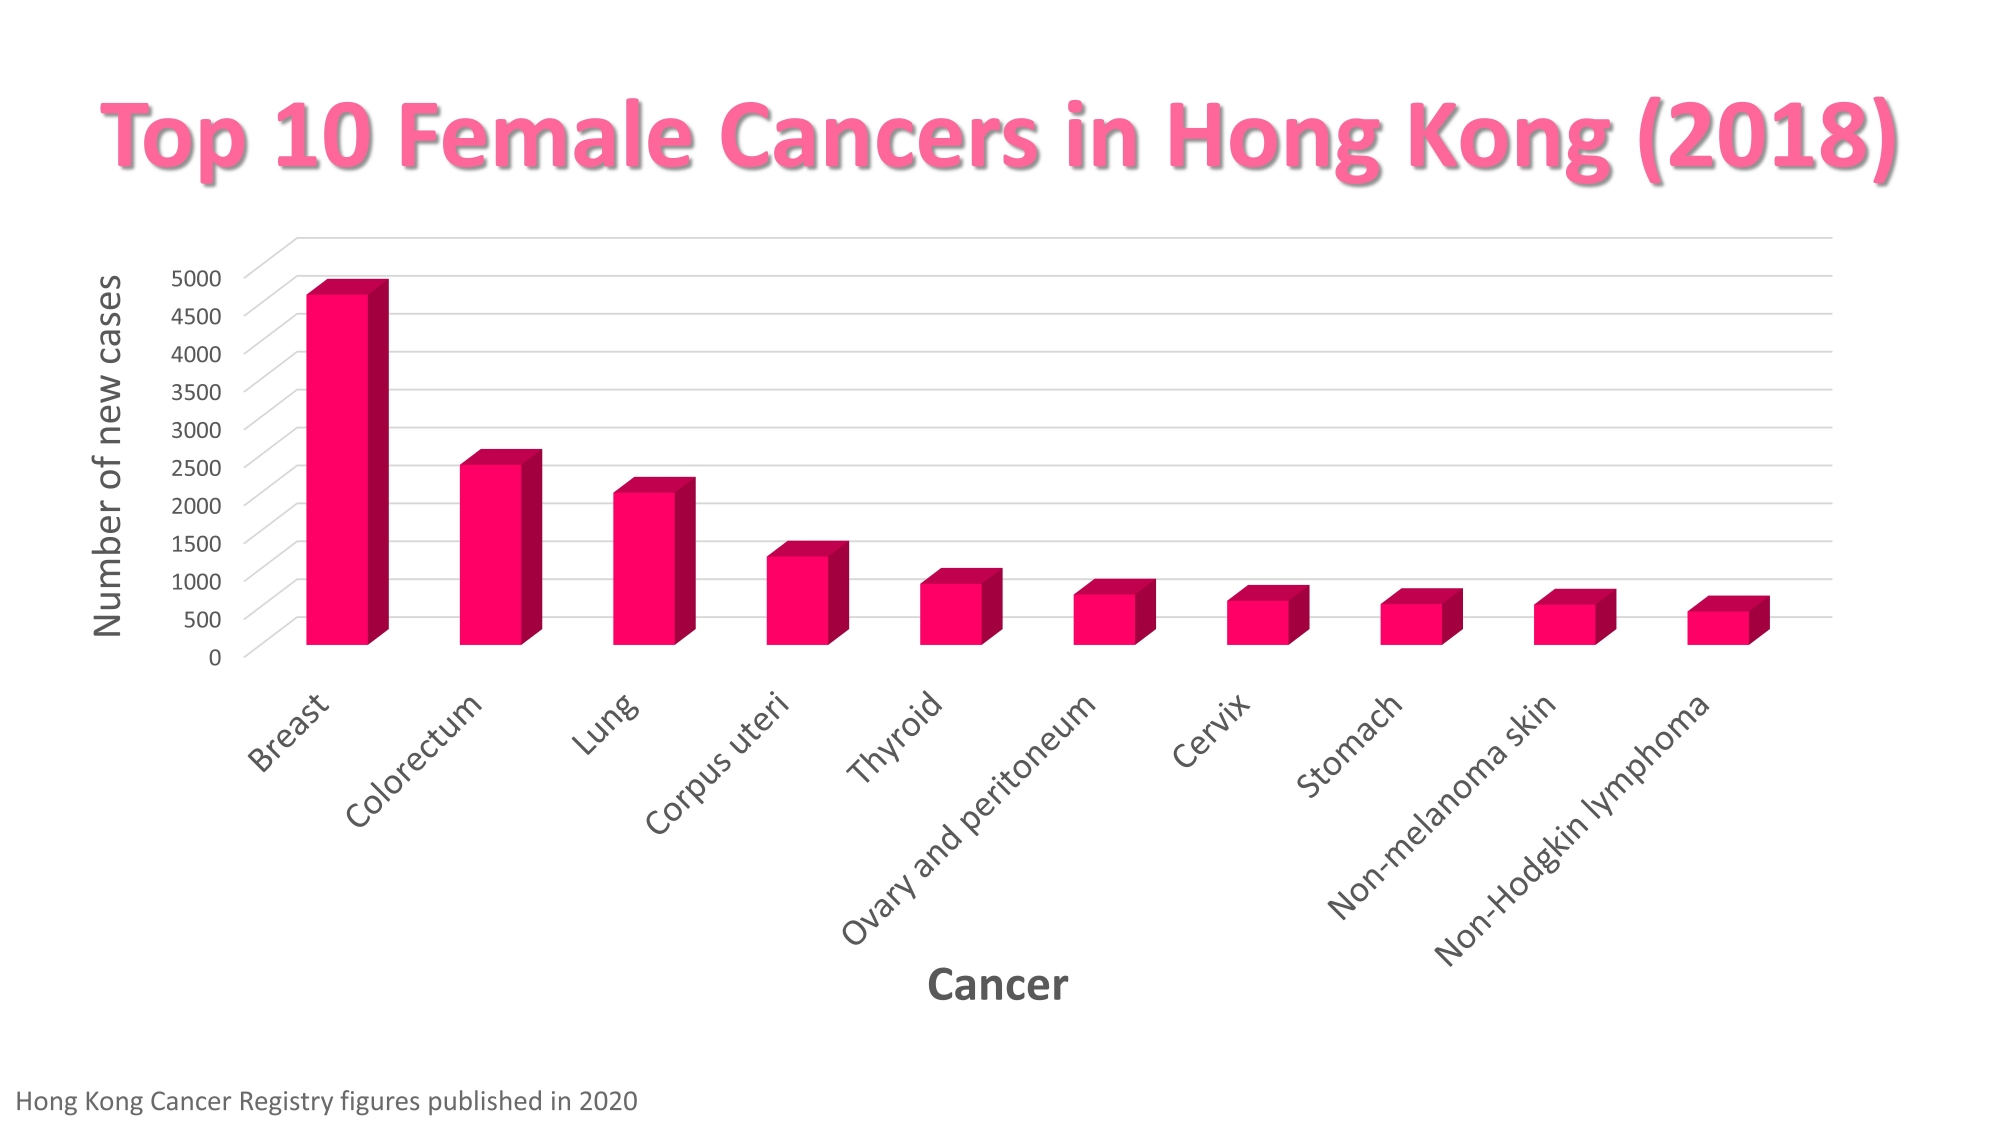 Self Photos / Files - 03. Top 10 Female Cancers in Hong Kong (2018)